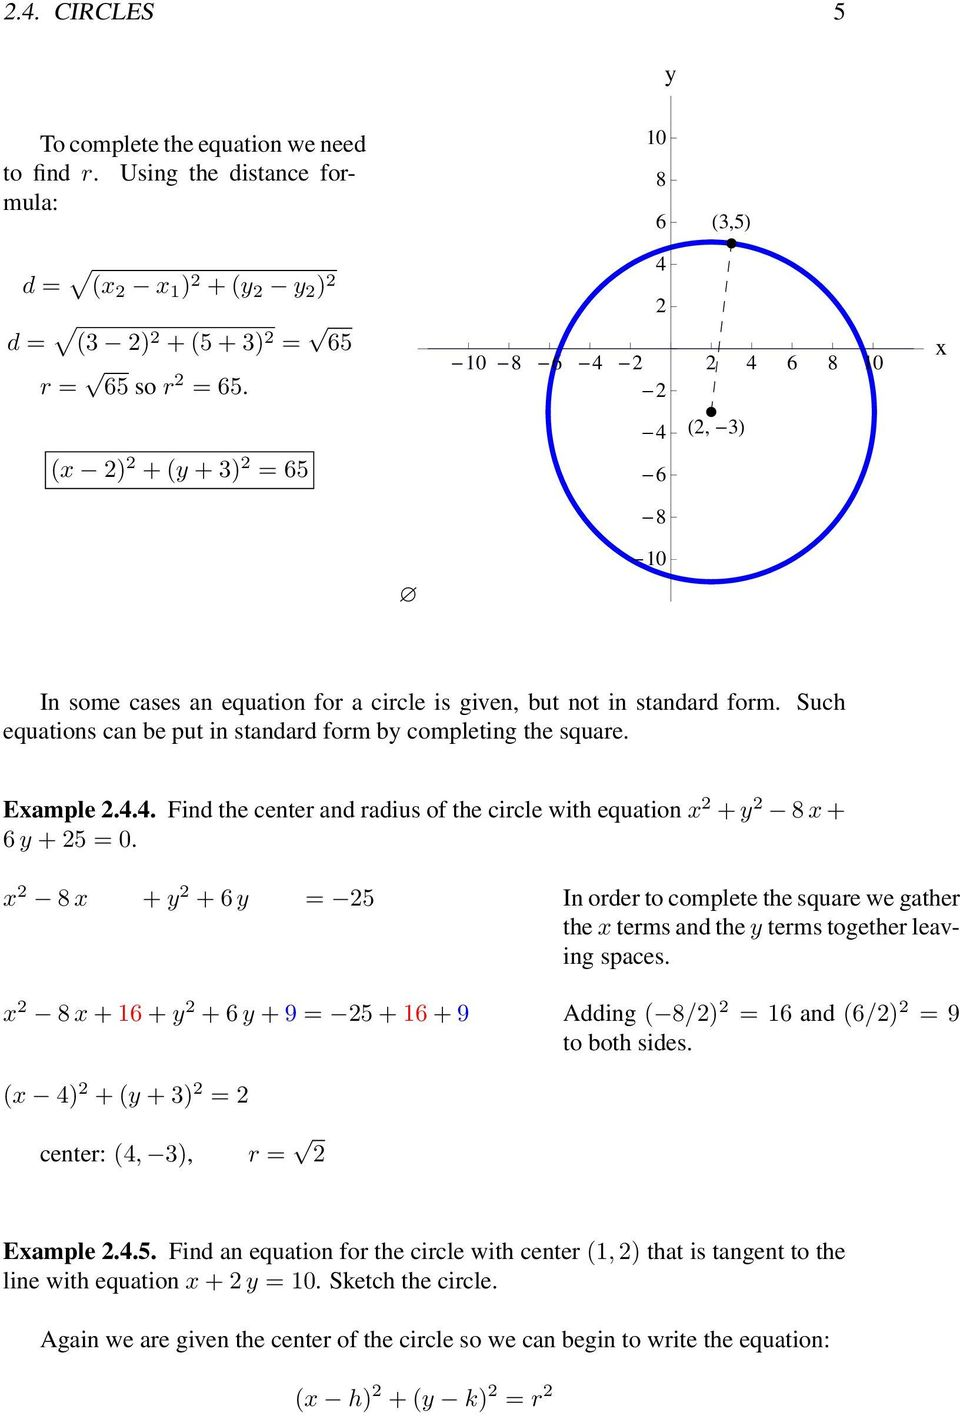 Example.4.4. Find the center and radius of the circle with equation x + y 8 x + 6 y + 5 = 0.